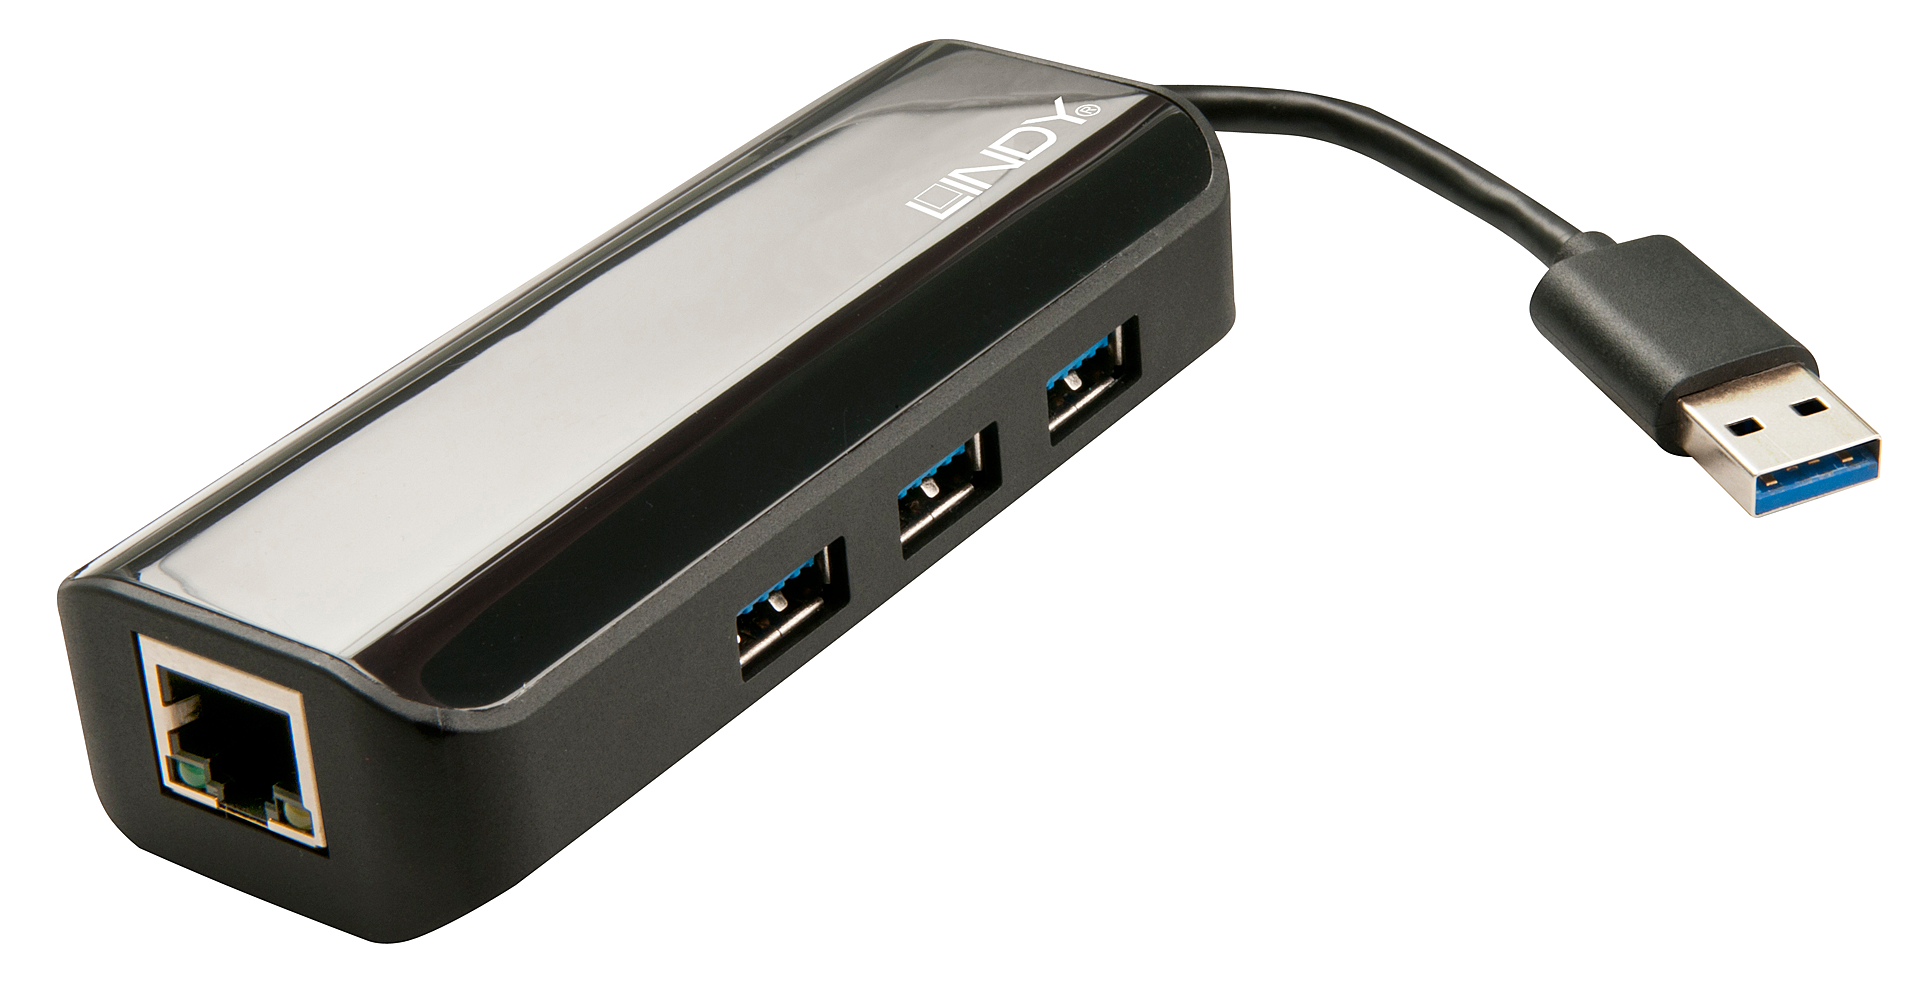 USB 3.0 Hub & Gigabit Ethernet Adapter